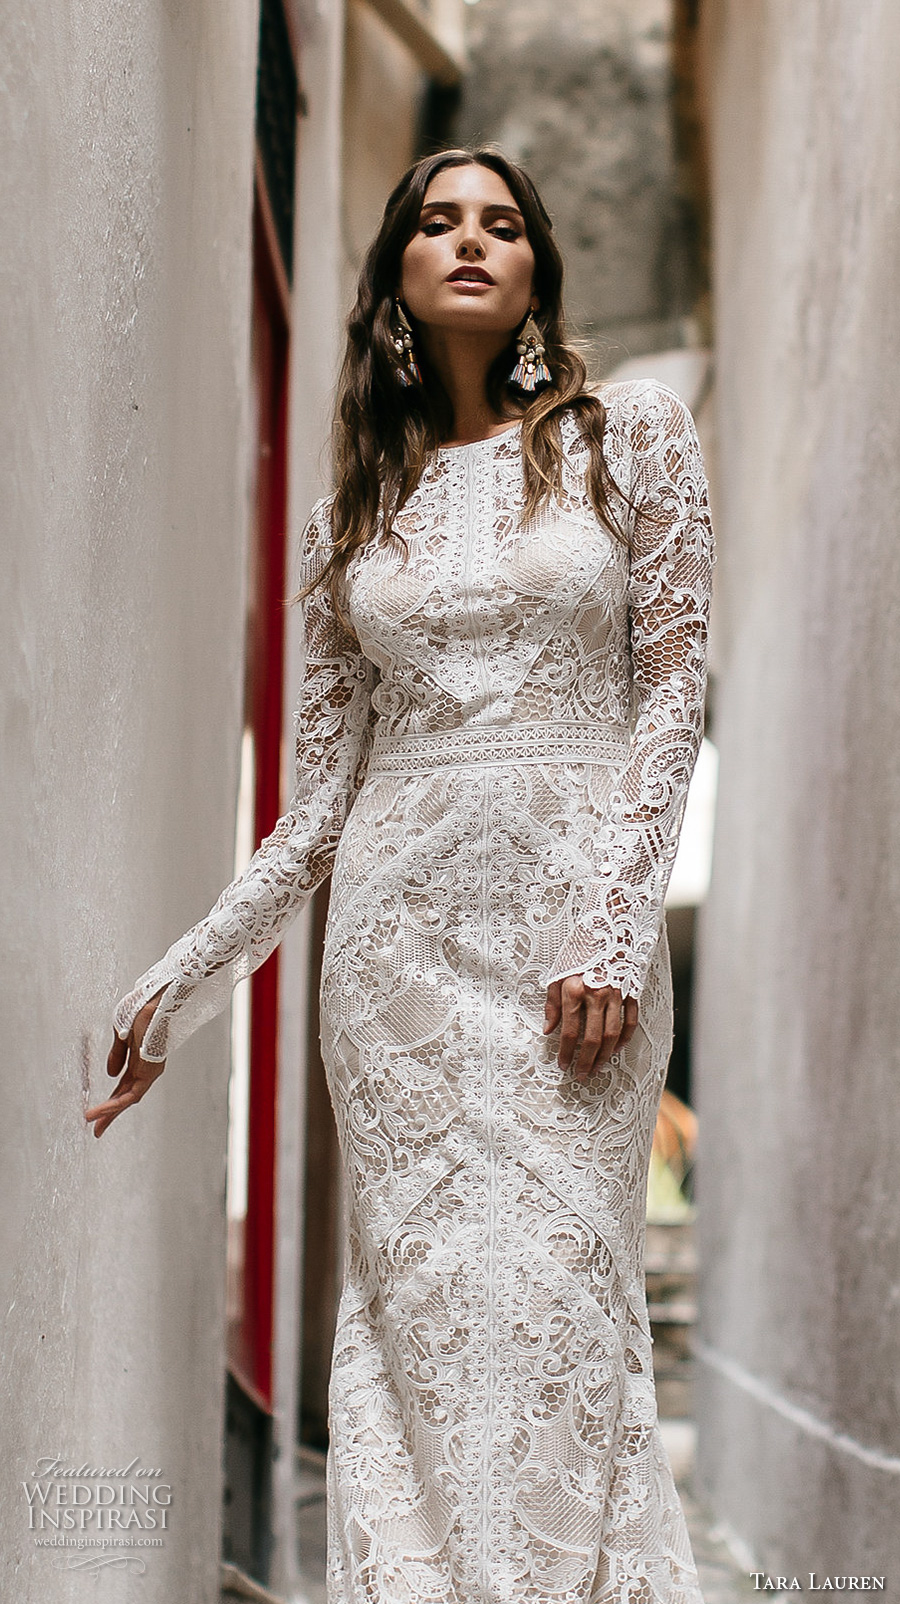 tara lauren spring 2017 bridal long sleeves jewel neck full embroidered elegant bohemian lace trumpet sheath wedding dress keyhole back short train (felix) zv